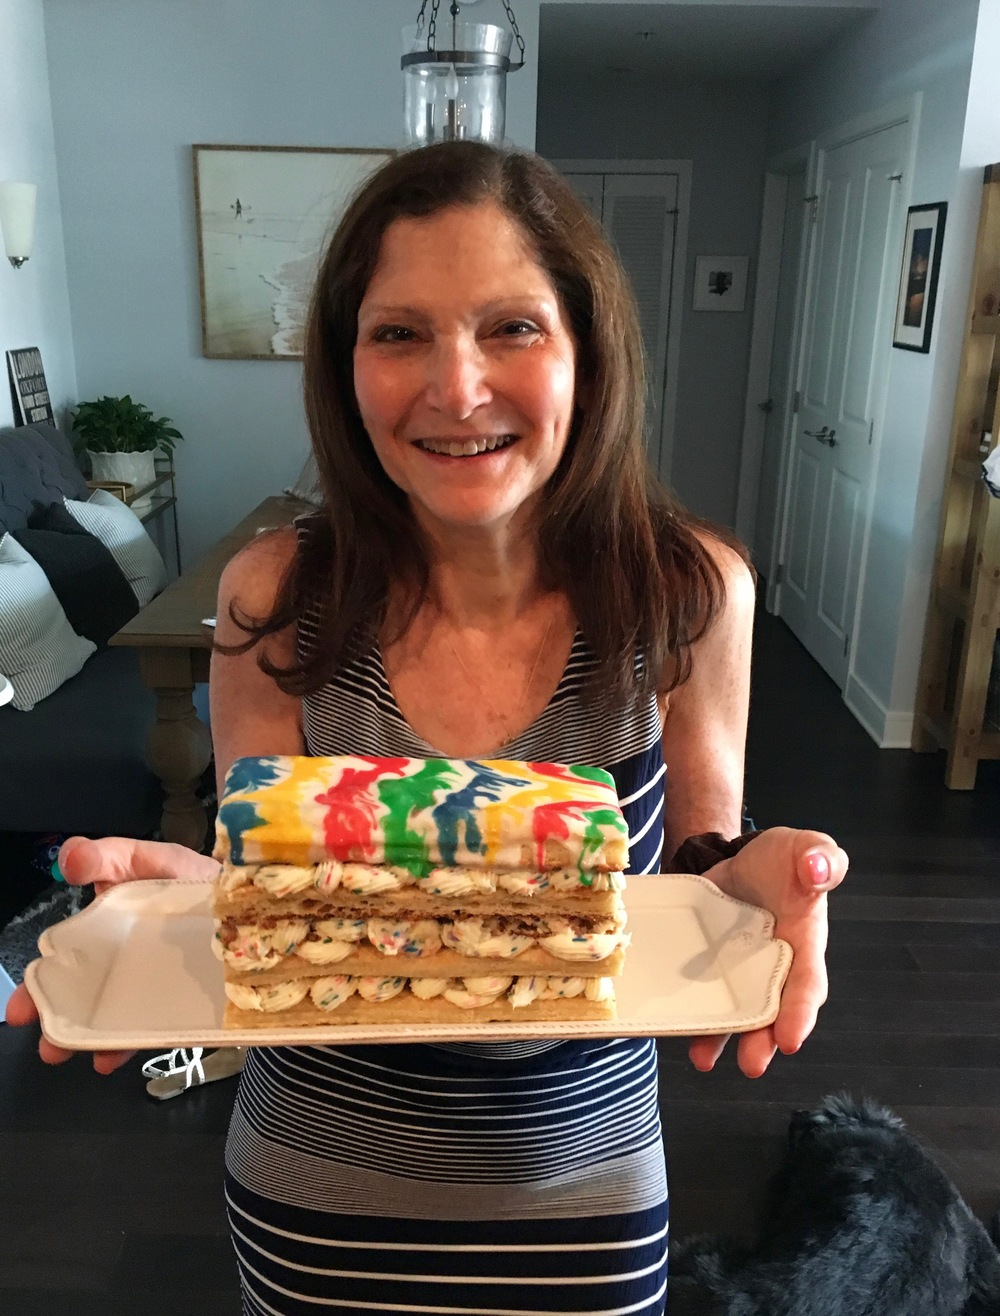 My beautiful mom with her cake.